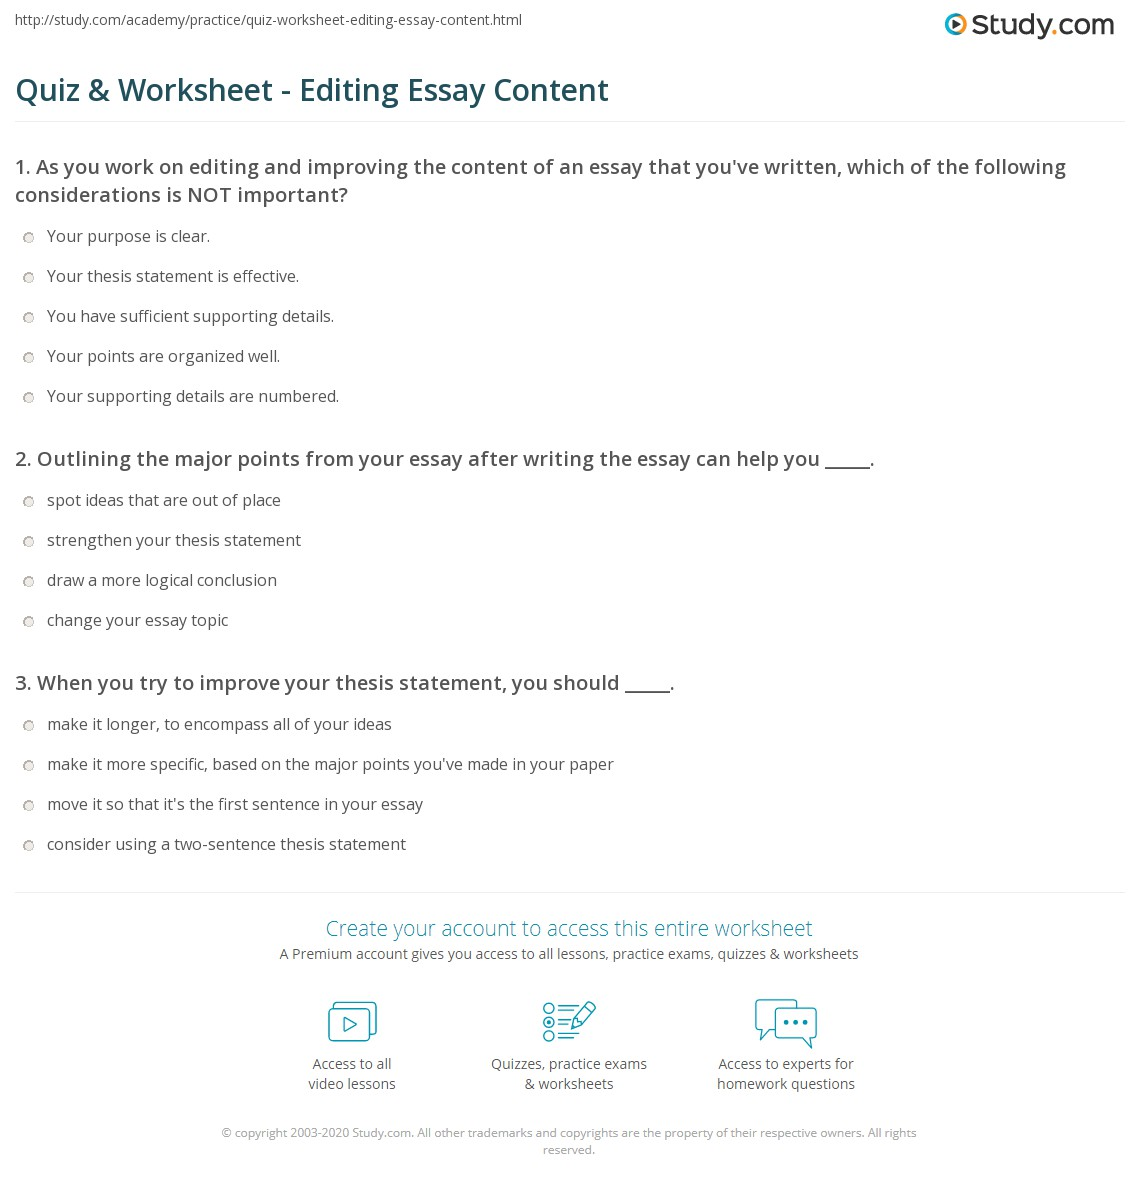 essay edit services mfawriting web fc com essay edit services